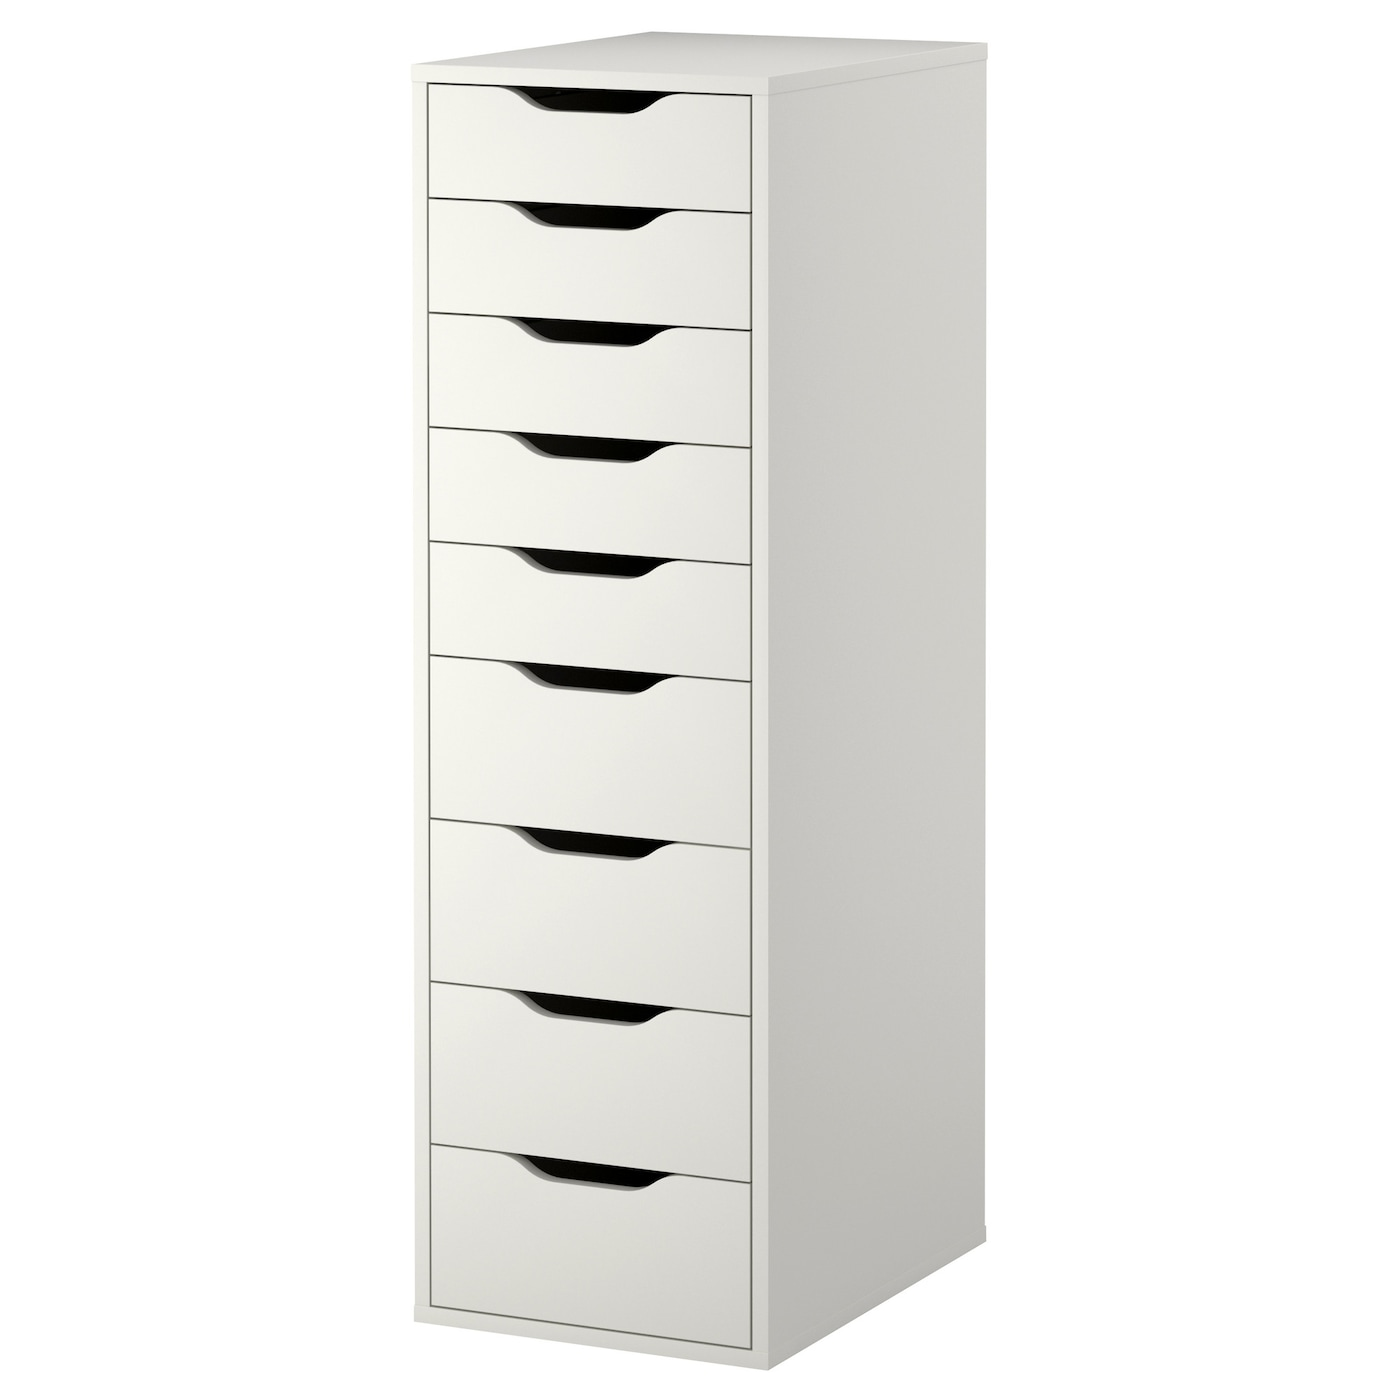 Office Storage Home Office Storage Ikea # Meuble Long Et Bas Ikea